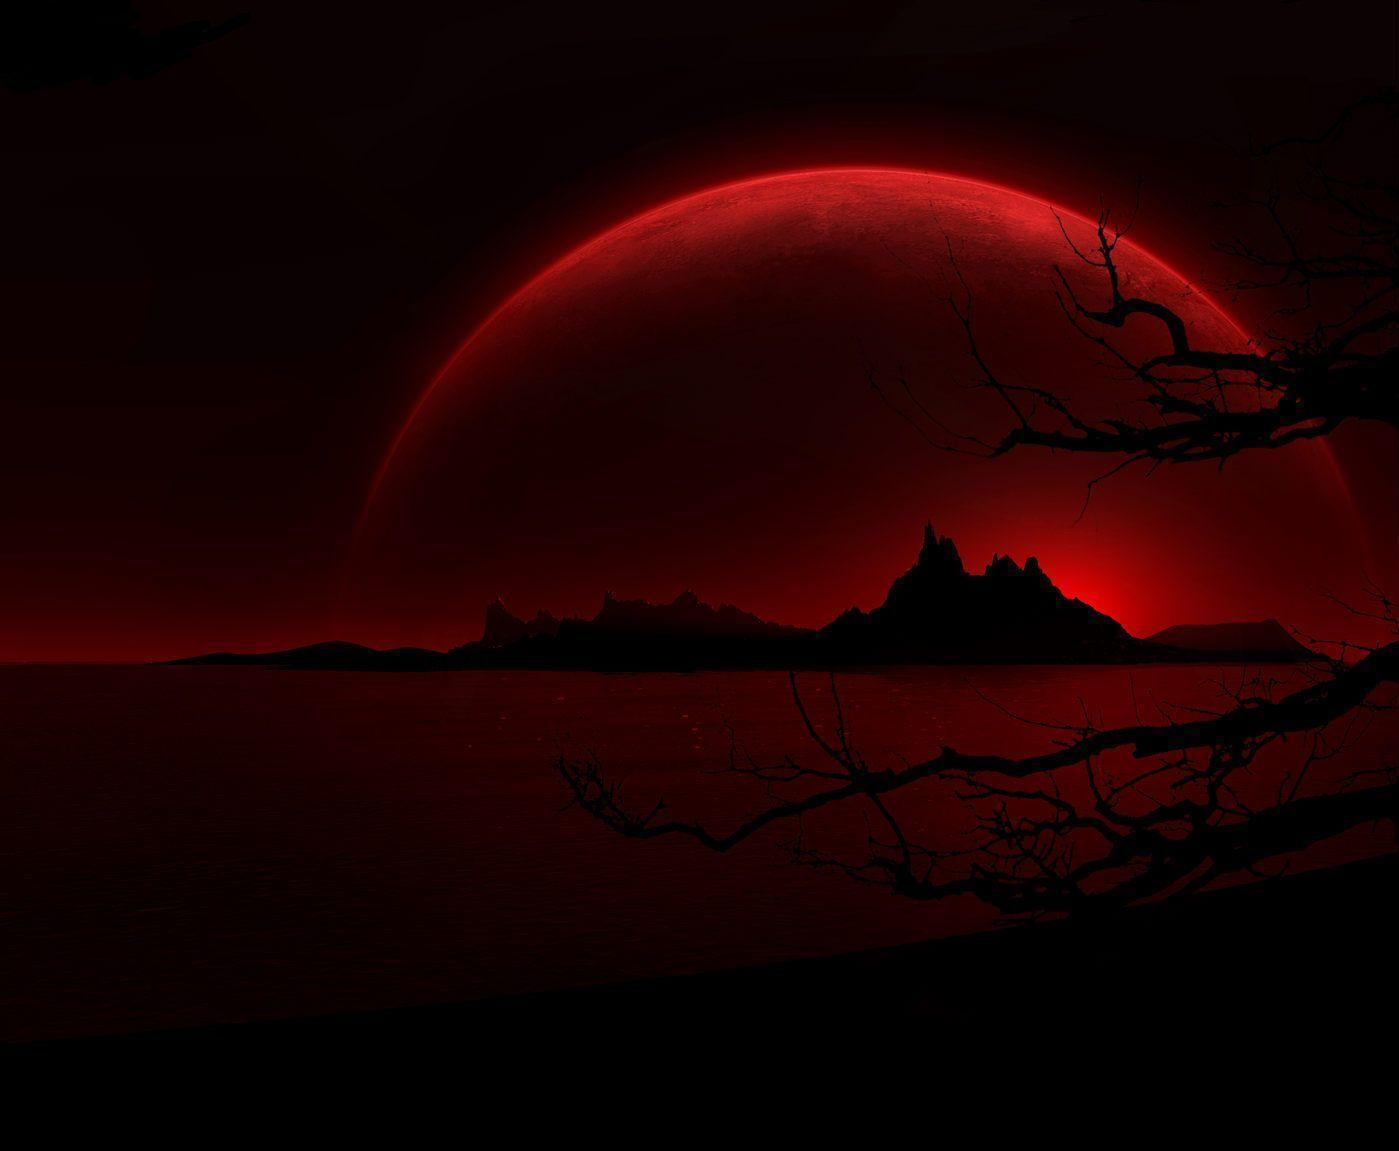 Red Moon Wallpaper: Blood Moon Wallpapers